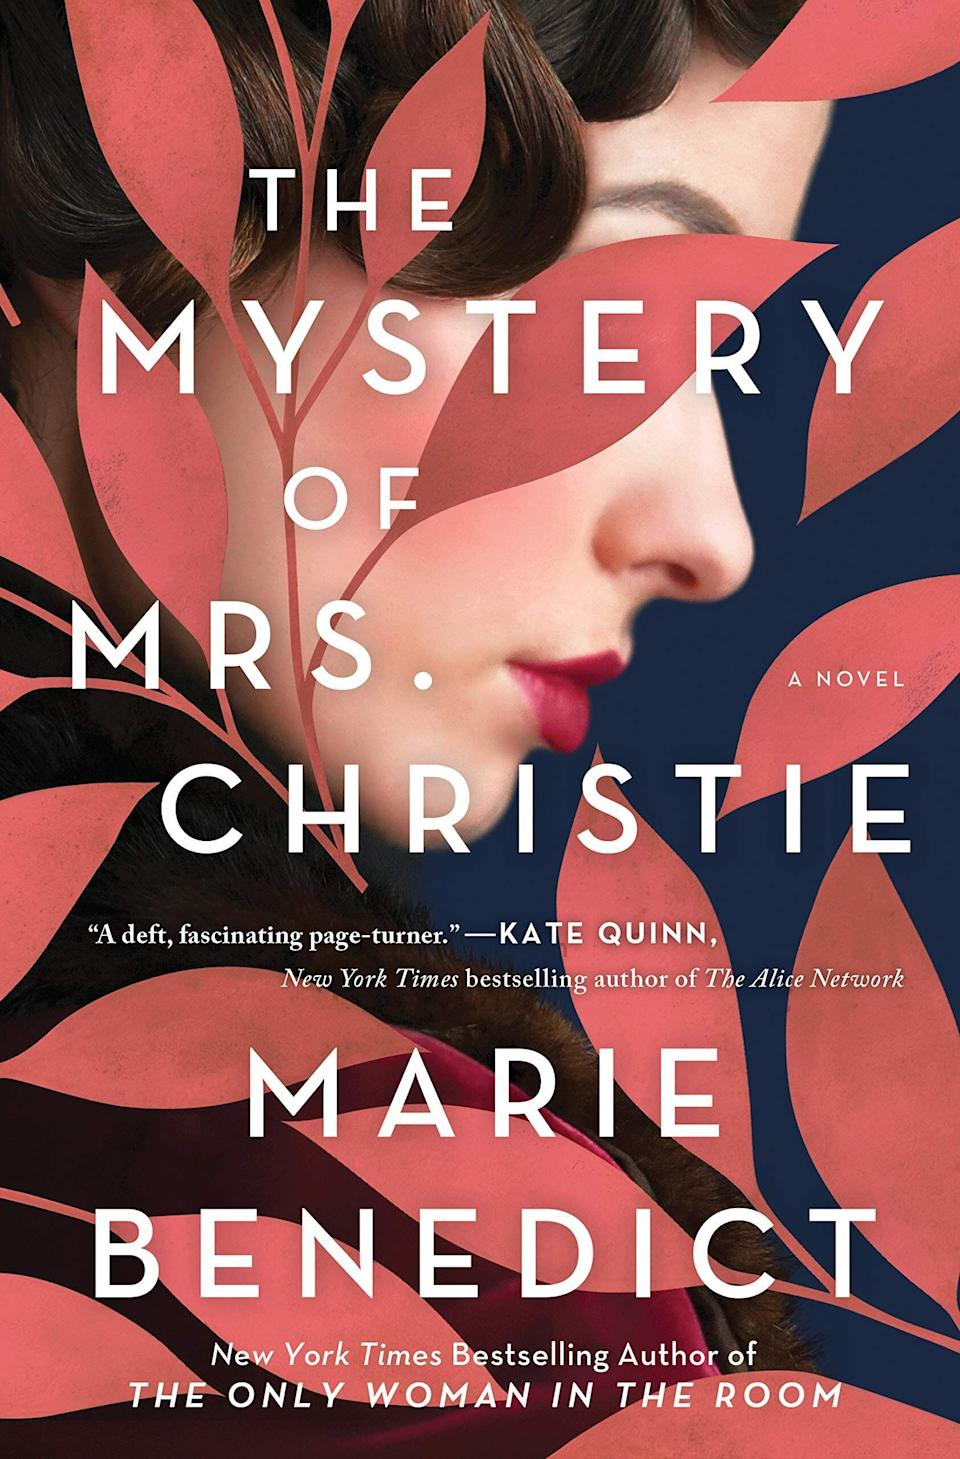 """If you're an ardent Agatha Christie fan, don't miss """"The Mystery of Mrs. Christie."""" This story of historical fiction explores the famous author's disappearance in December 1926, which prompted an unprecedented manhunt. Although Christie reappeared 11 days later, the details surrounding the scenario remain murky at best. Read more about it on <a href=""""https://www.goodreads.com/book/show/54221749-the-mystery-of-mrs-christie"""">Goodreads</a>, and grab a copy on <a href=""""https://amzn.to/2Vnjth9"""">Amazon</a> or <a href=""""https://fave.co/3mF5teA"""">Bookshop</a>.<br /><br /><i>Expected release date:</i> <i>December 29</i>"""